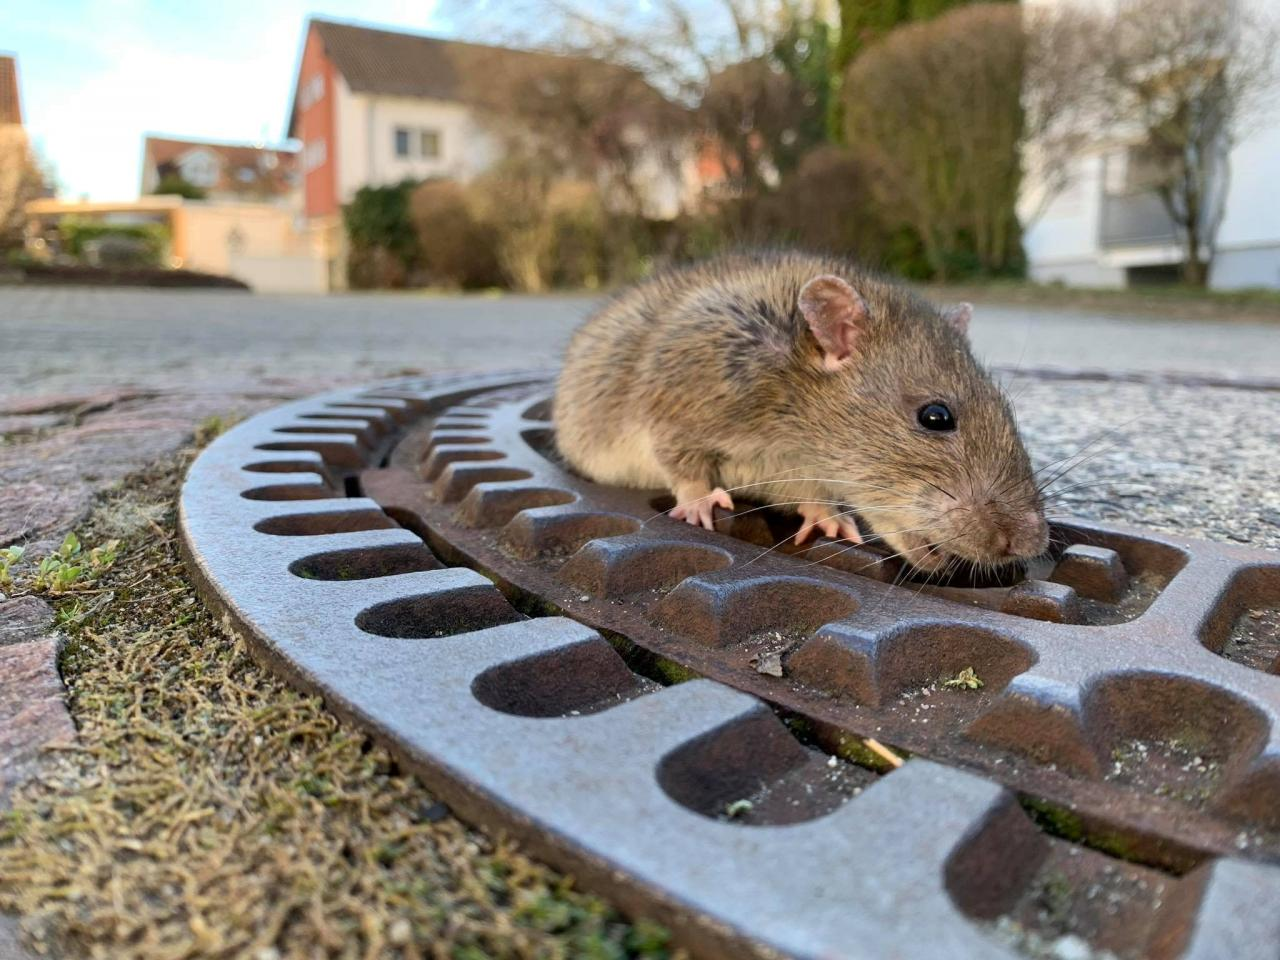 Rat reacts while being stuck in a manhole cover in Bensheim-Auerbach